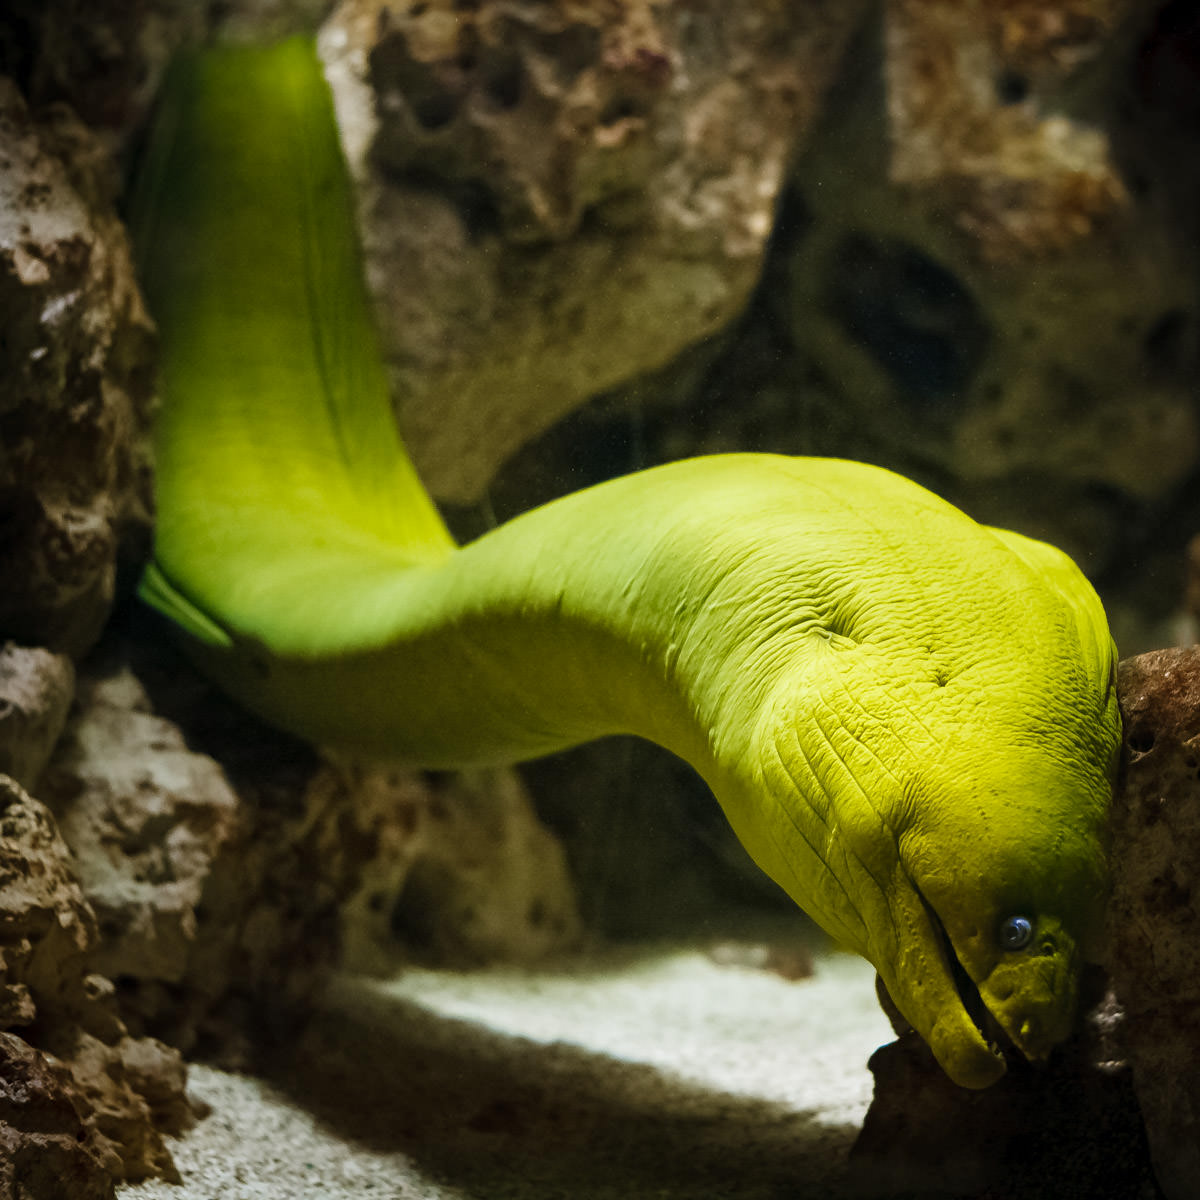 The creepy stare of a green moray eel at the Dallas Aquarium in Fair Park.